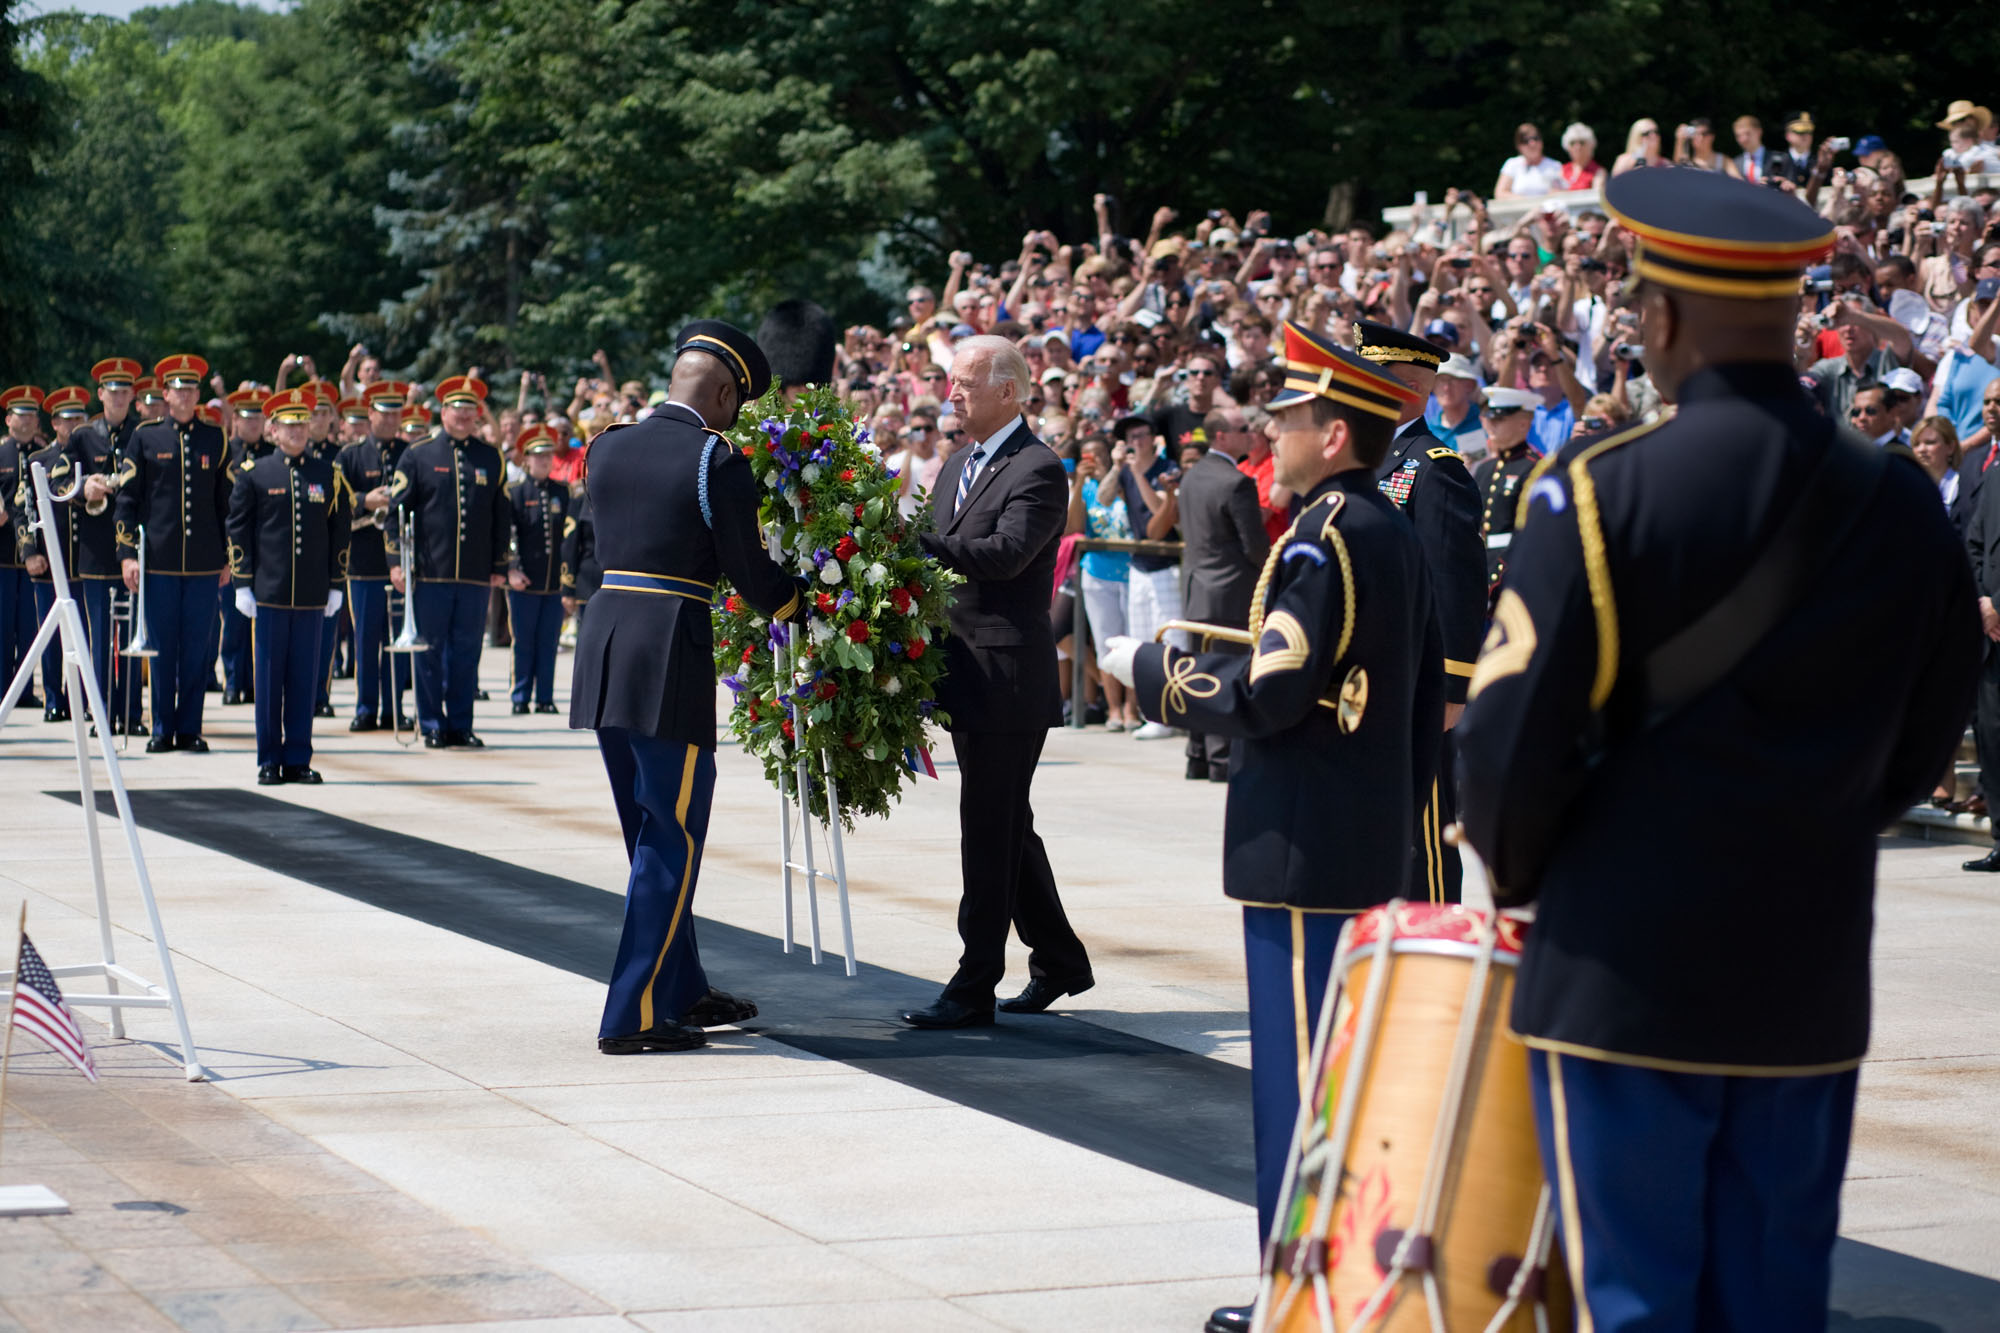 Vice President Biden Lays a Wreath at the Tomb of the Unknowns in Arlington